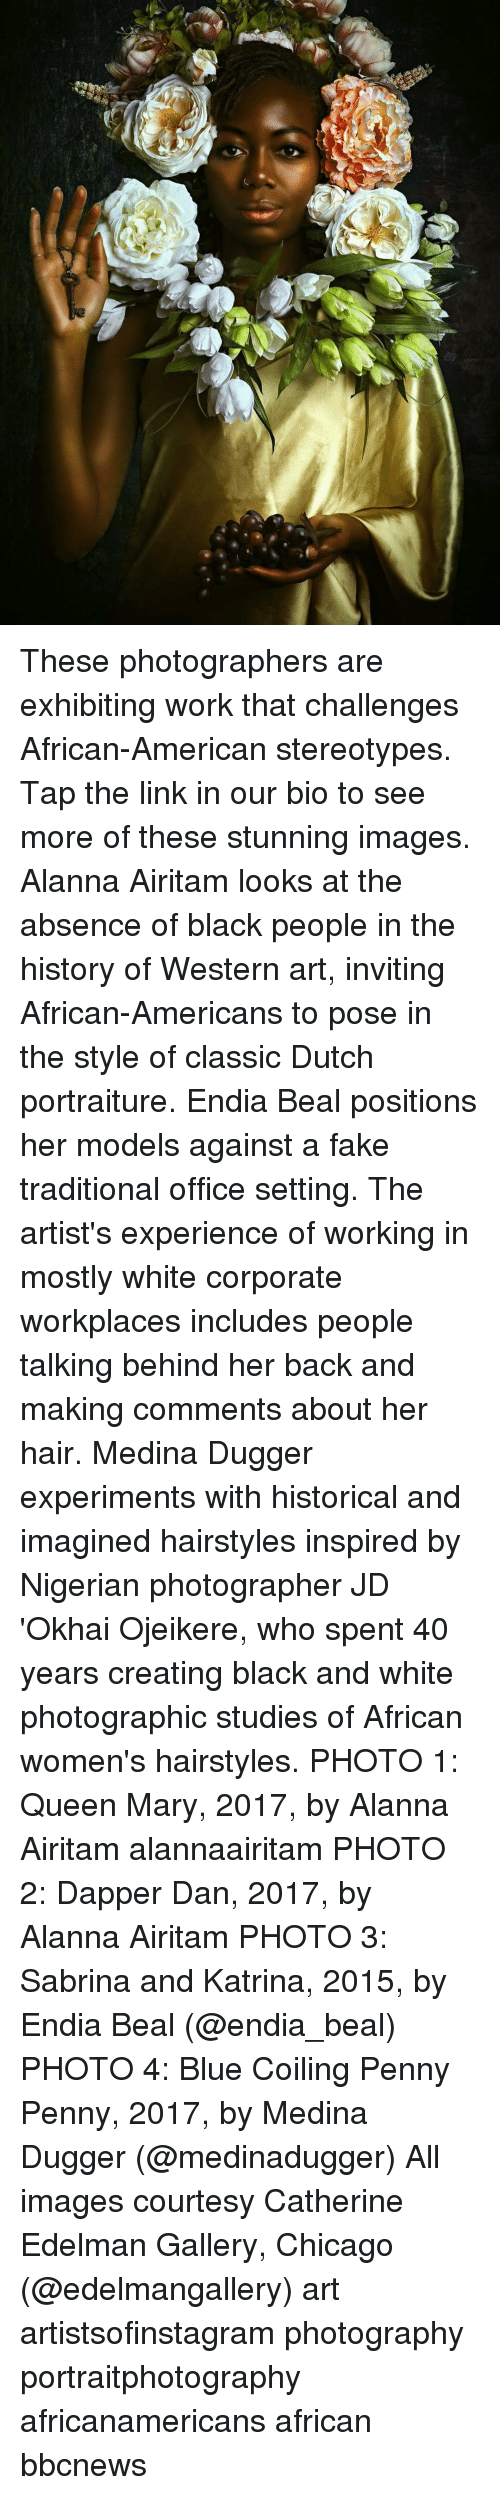 Hairstyles: These photographers are exhibiting work that challenges African-American stereotypes. Tap the link in our bio to see more of these stunning images. Alanna Airitam looks at the absence of black people in the history of Western art, inviting African-Americans to pose in the style of classic Dutch portraiture. Endia Beal positions her models against a fake traditional office setting. The artist's experience of working in mostly white corporate workplaces includes people talking behind her back and making comments about her hair. Medina Dugger experiments with historical and imagined hairstyles inspired by Nigerian photographer JD 'Okhai Ojeikere, who spent 40 years creating black and white photographic studies of African women's hairstyles. PHOTO 1: Queen Mary, 2017, by Alanna Airitam alannaairitam PHOTO 2: Dapper Dan, 2017, by Alanna Airitam PHOTO 3: Sabrina and Katrina, 2015, by Endia Beal (@endia_beal) PHOTO 4: Blue Coiling Penny Penny, 2017, by Medina Dugger (@medinadugger) All images courtesy Catherine Edelman Gallery, Chicago (@edelmangallery) art artistsofinstagram photography portraitphotography africanamericans african bbcnews